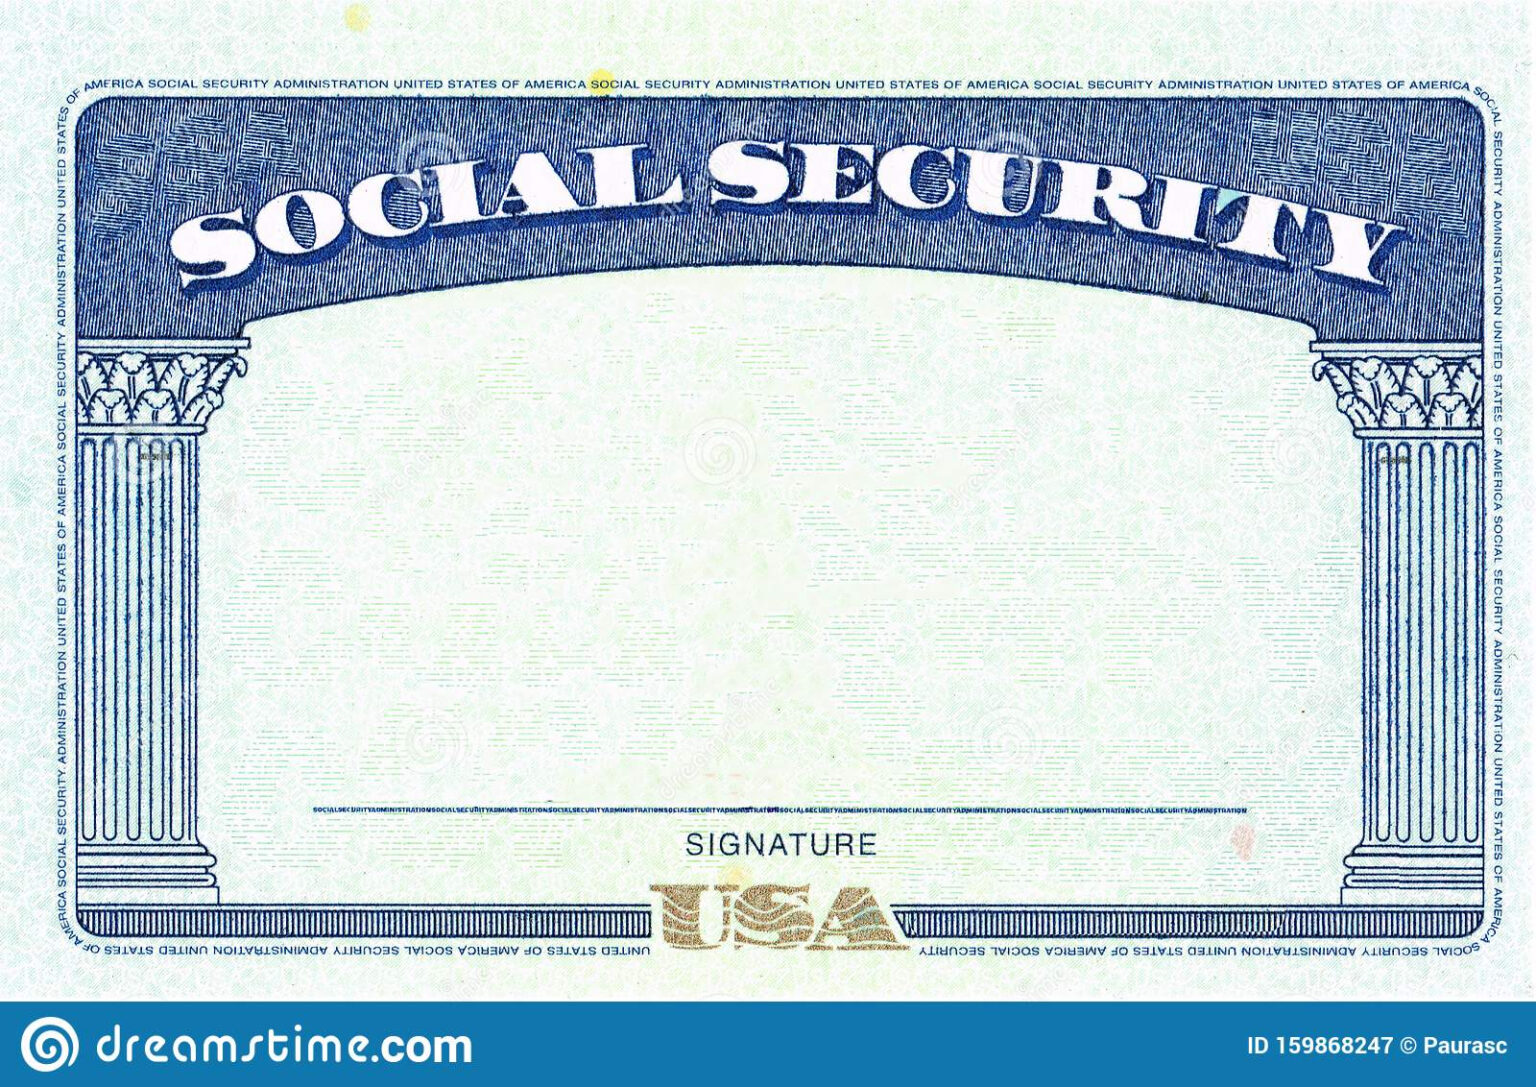 social security card blank stock image image of